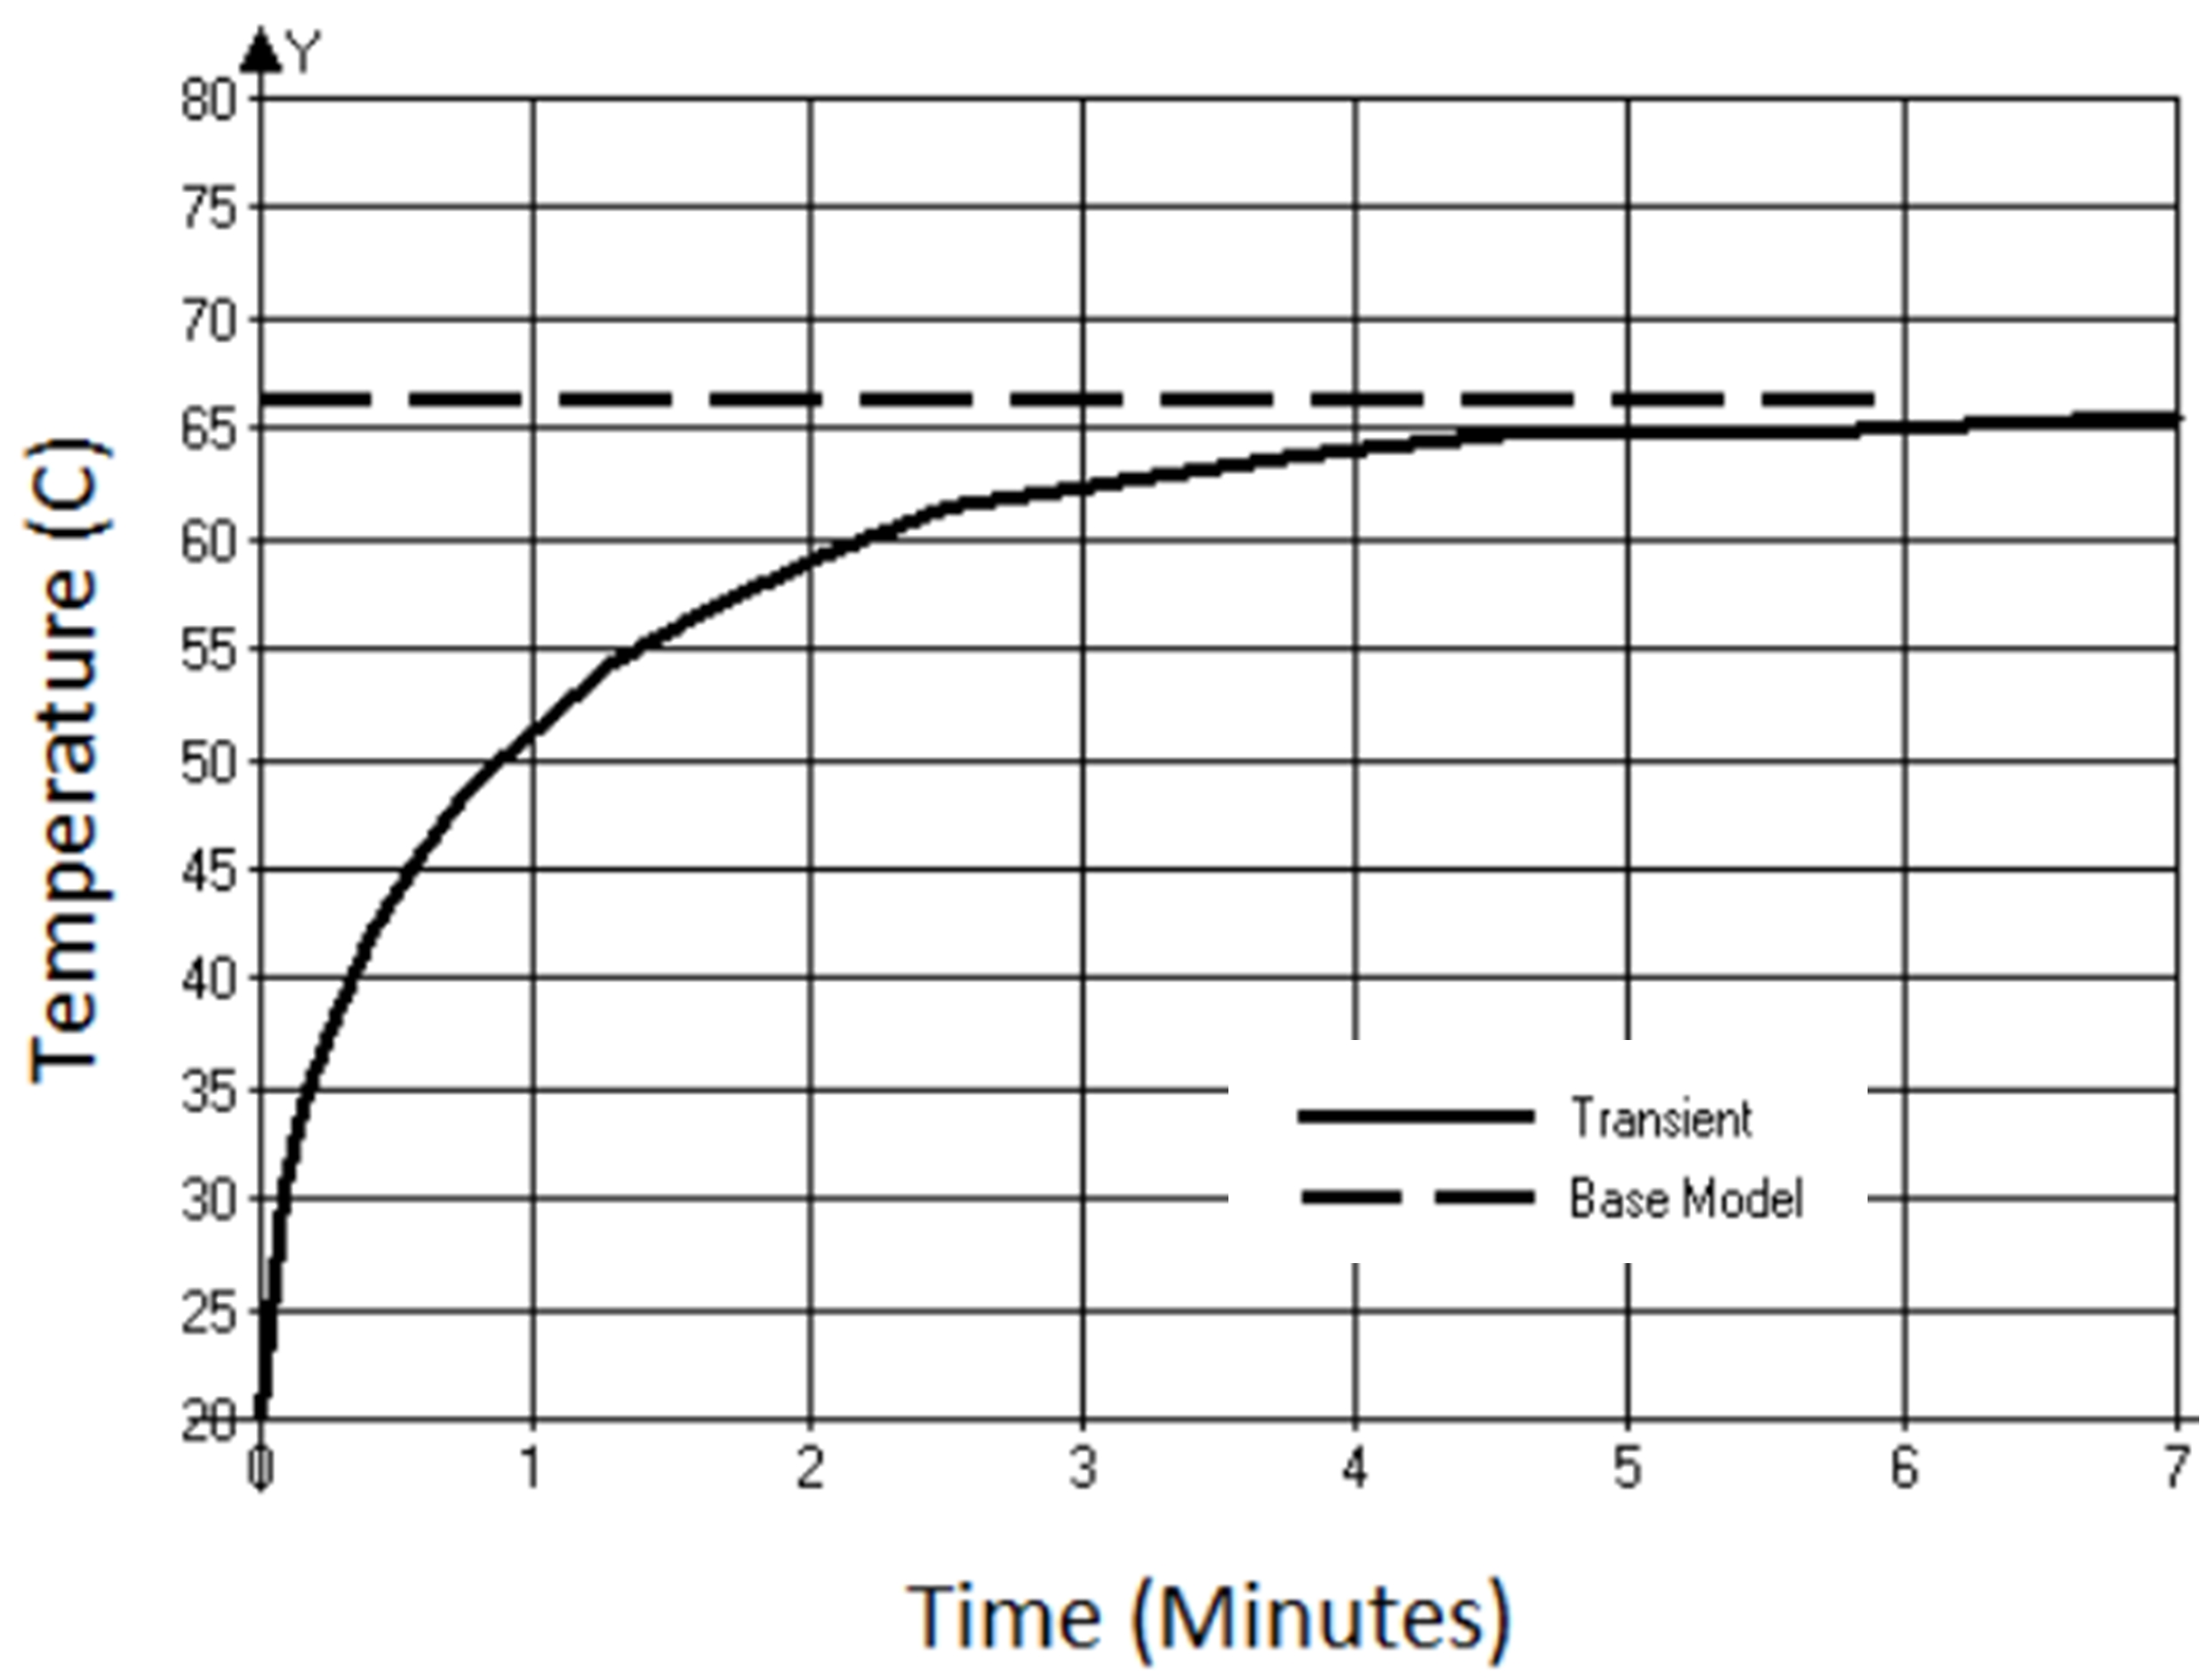 graph shows thermal response transient